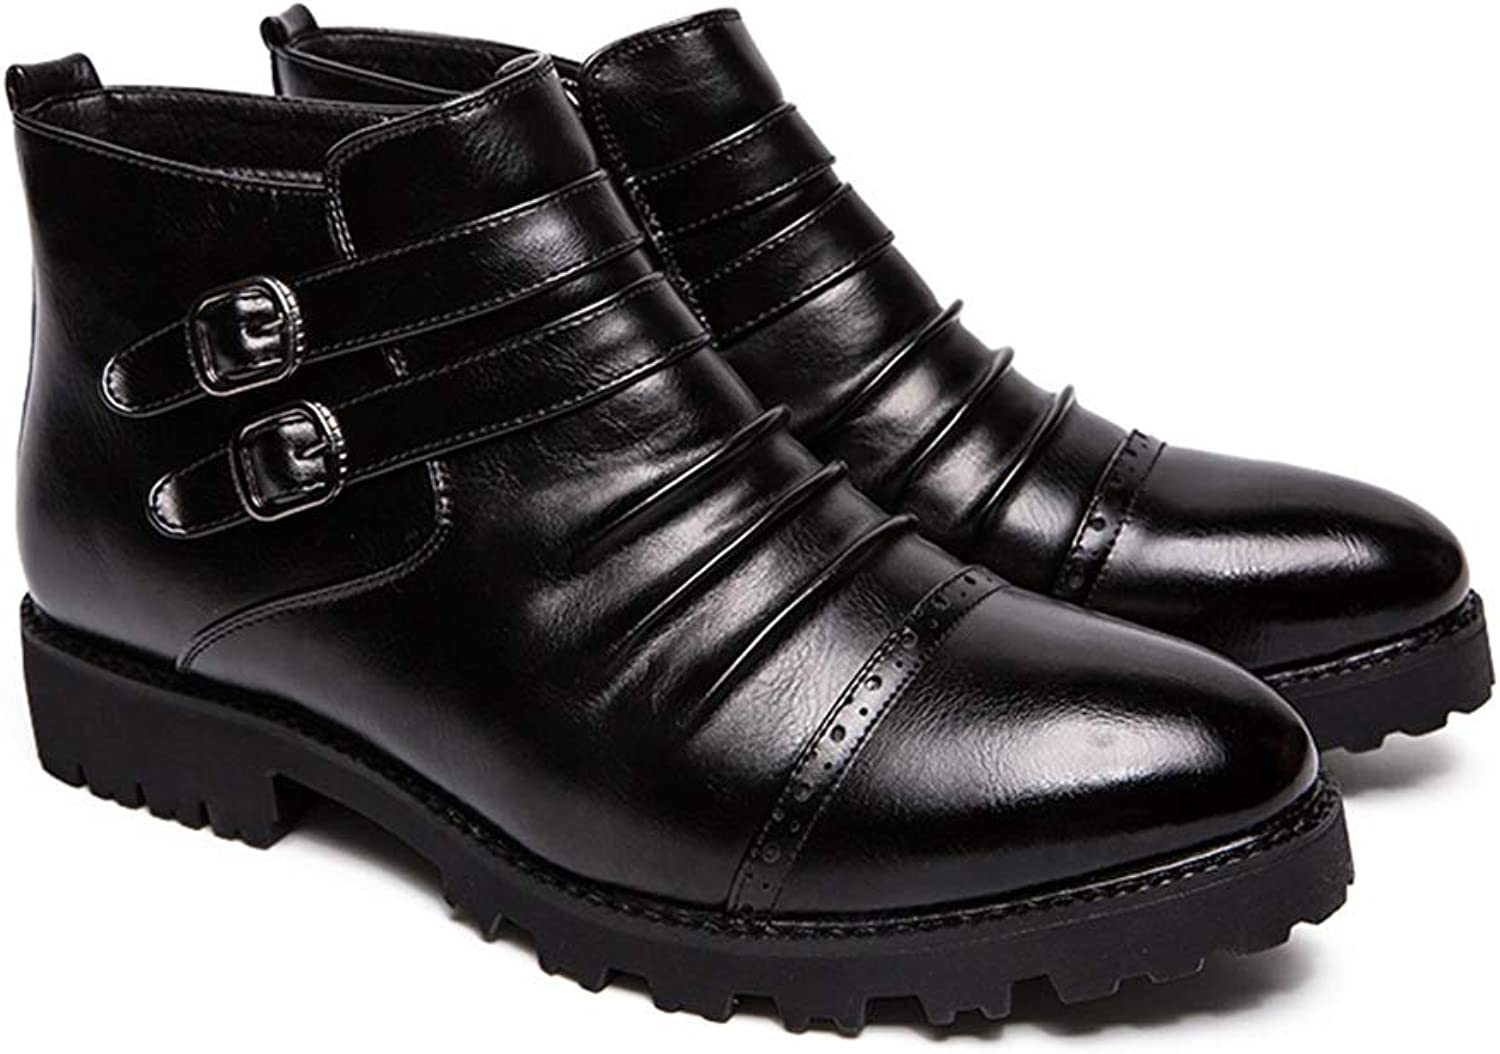 Easy Go Shopping Men's Fashionable Ankle Boots Casual Comfortable and Convenient Zipper High Top Martin Boot Cricket shoes